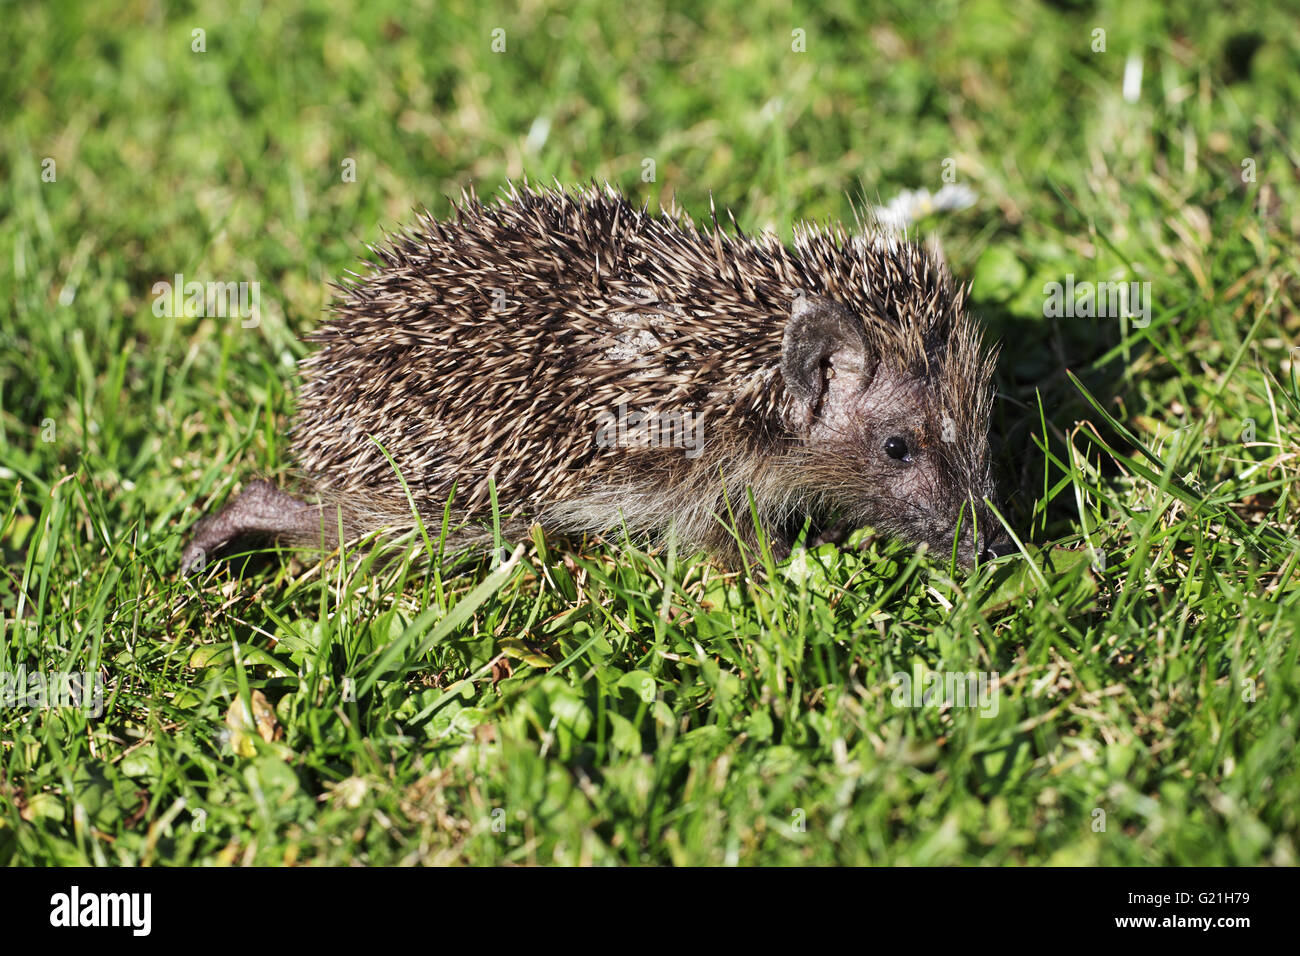 Western hedgehog Erinaceus europaeus very young individual searching for food during very dry weather Ringwood Hampshire - Stock Image